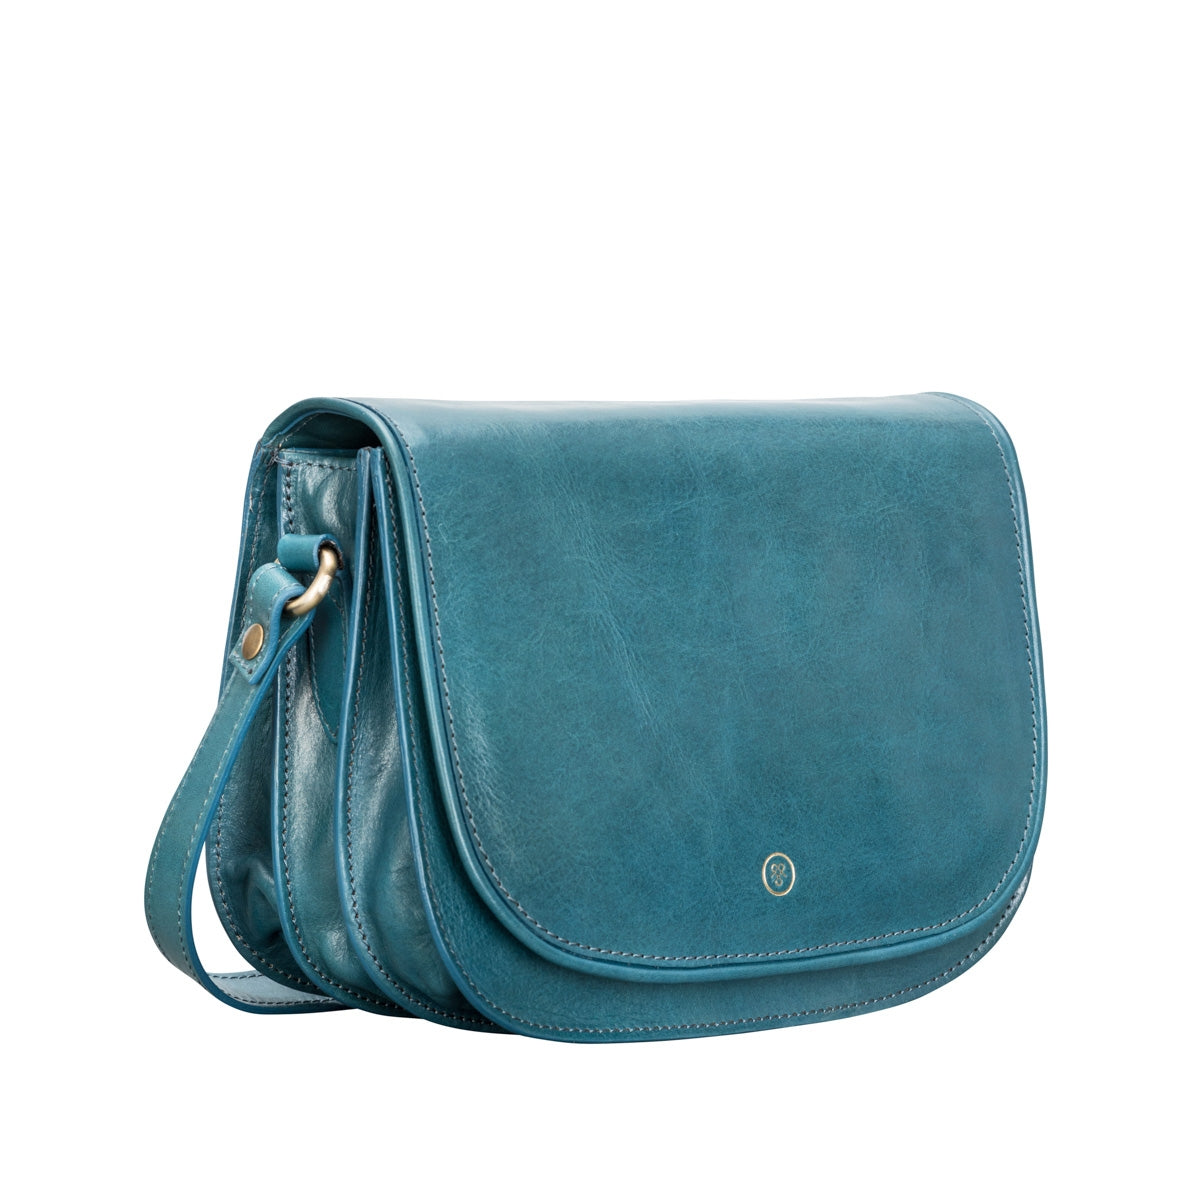 Image 2 of the 'MedollaM' Petrol Leather Women's Saddle Bag